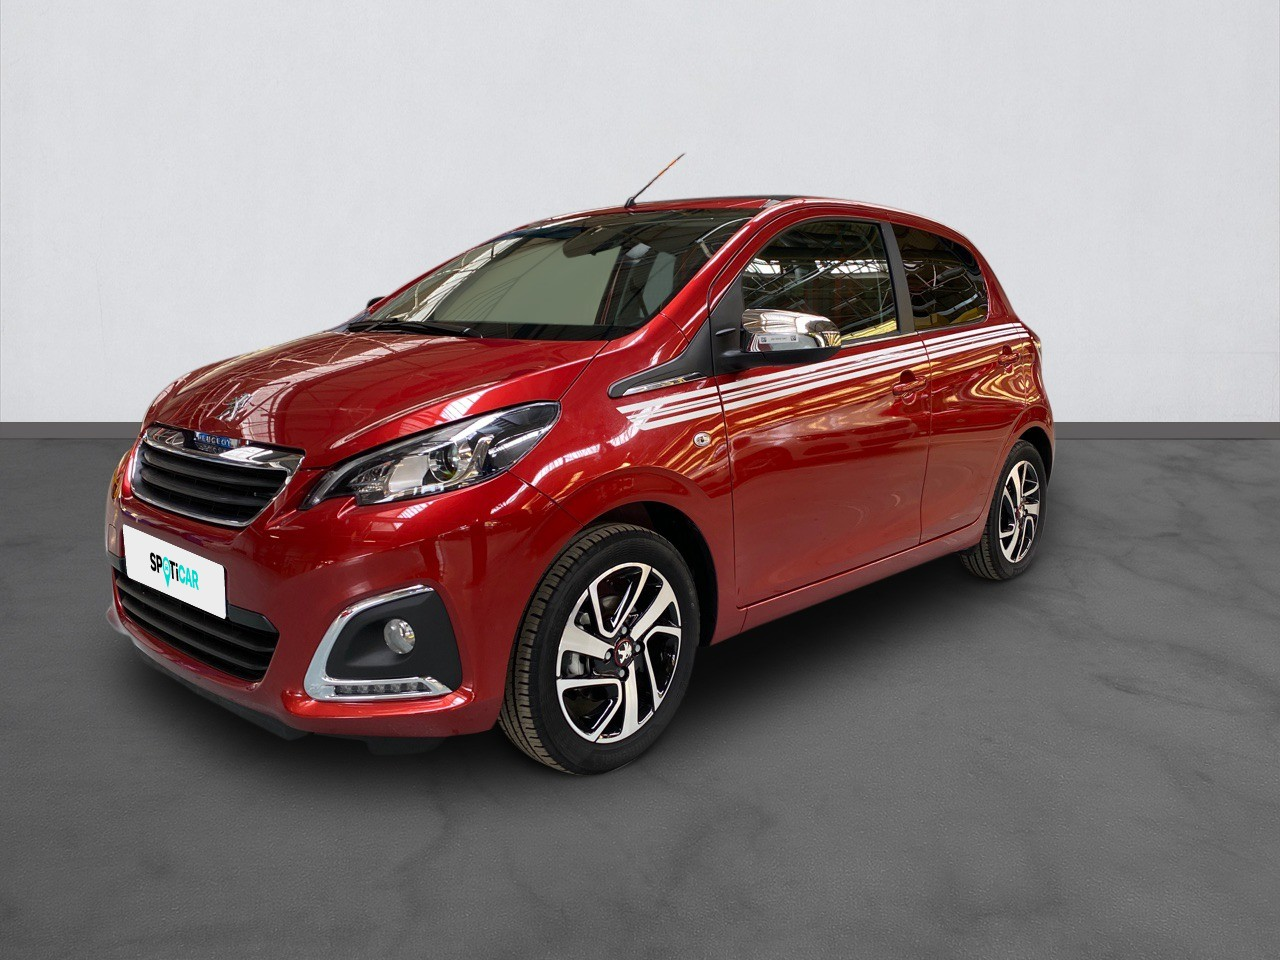 PEUGEOT 108 VTI 72CH S&S BVM5 COLLECTION TOP!